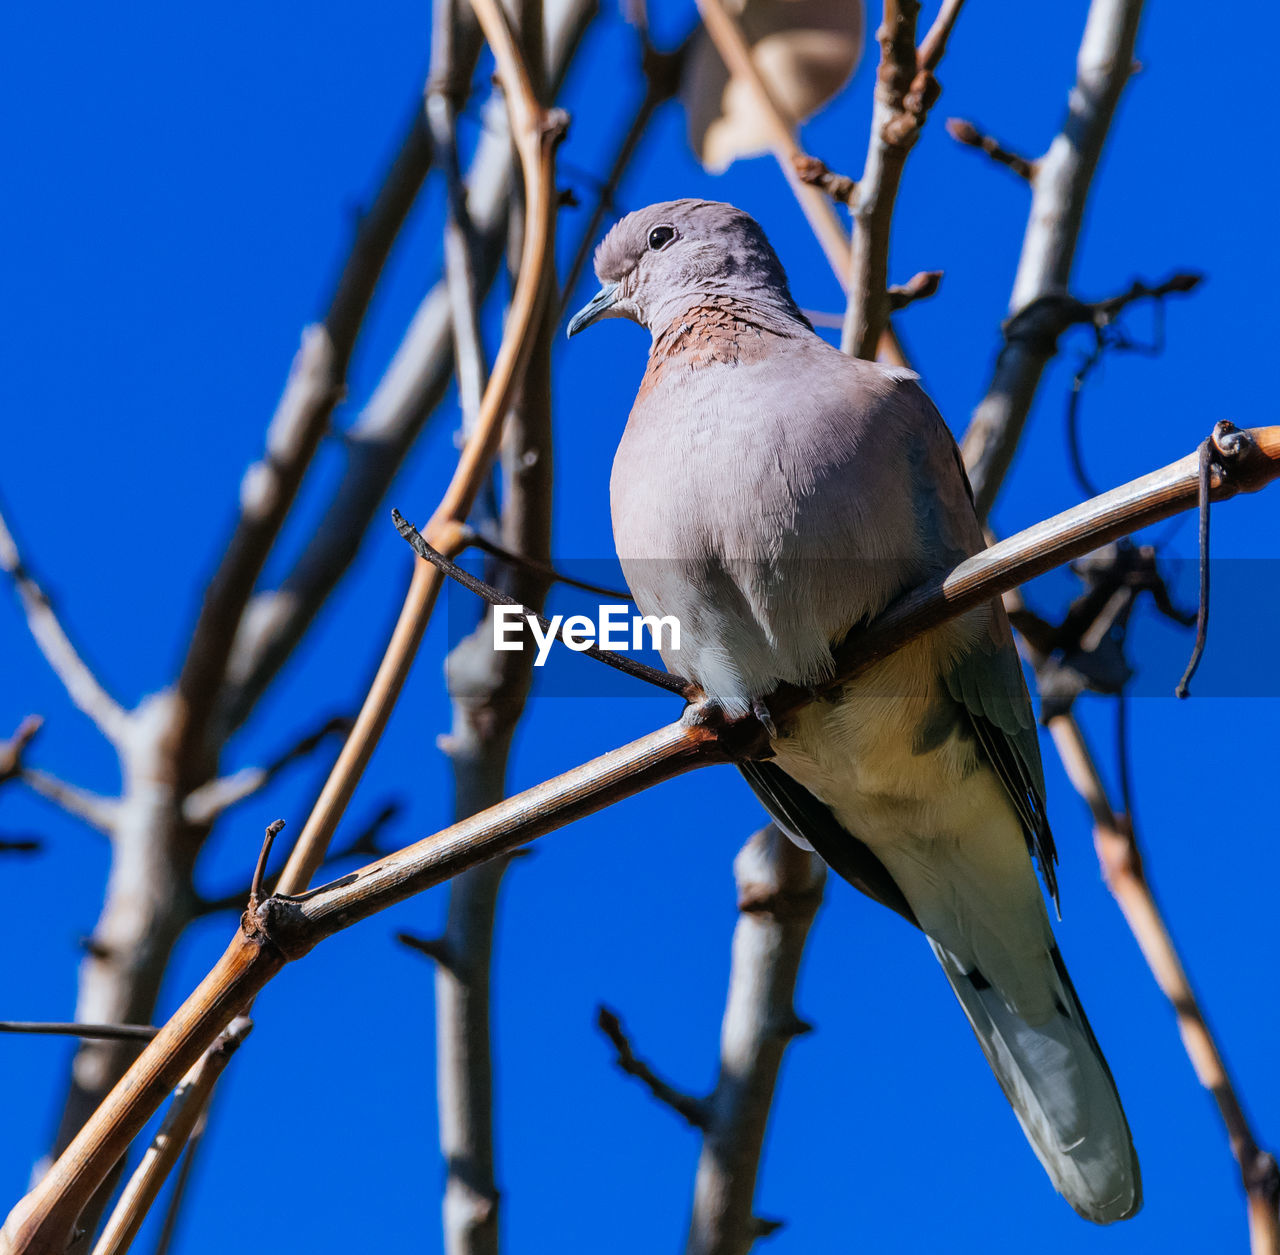 vertebrate, bird, perching, animal, animal themes, one animal, animal wildlife, low angle view, tree, branch, animals in the wild, blue, focus on foreground, nature, plant, sky, day, clear sky, no people, outdoors, mourning dove